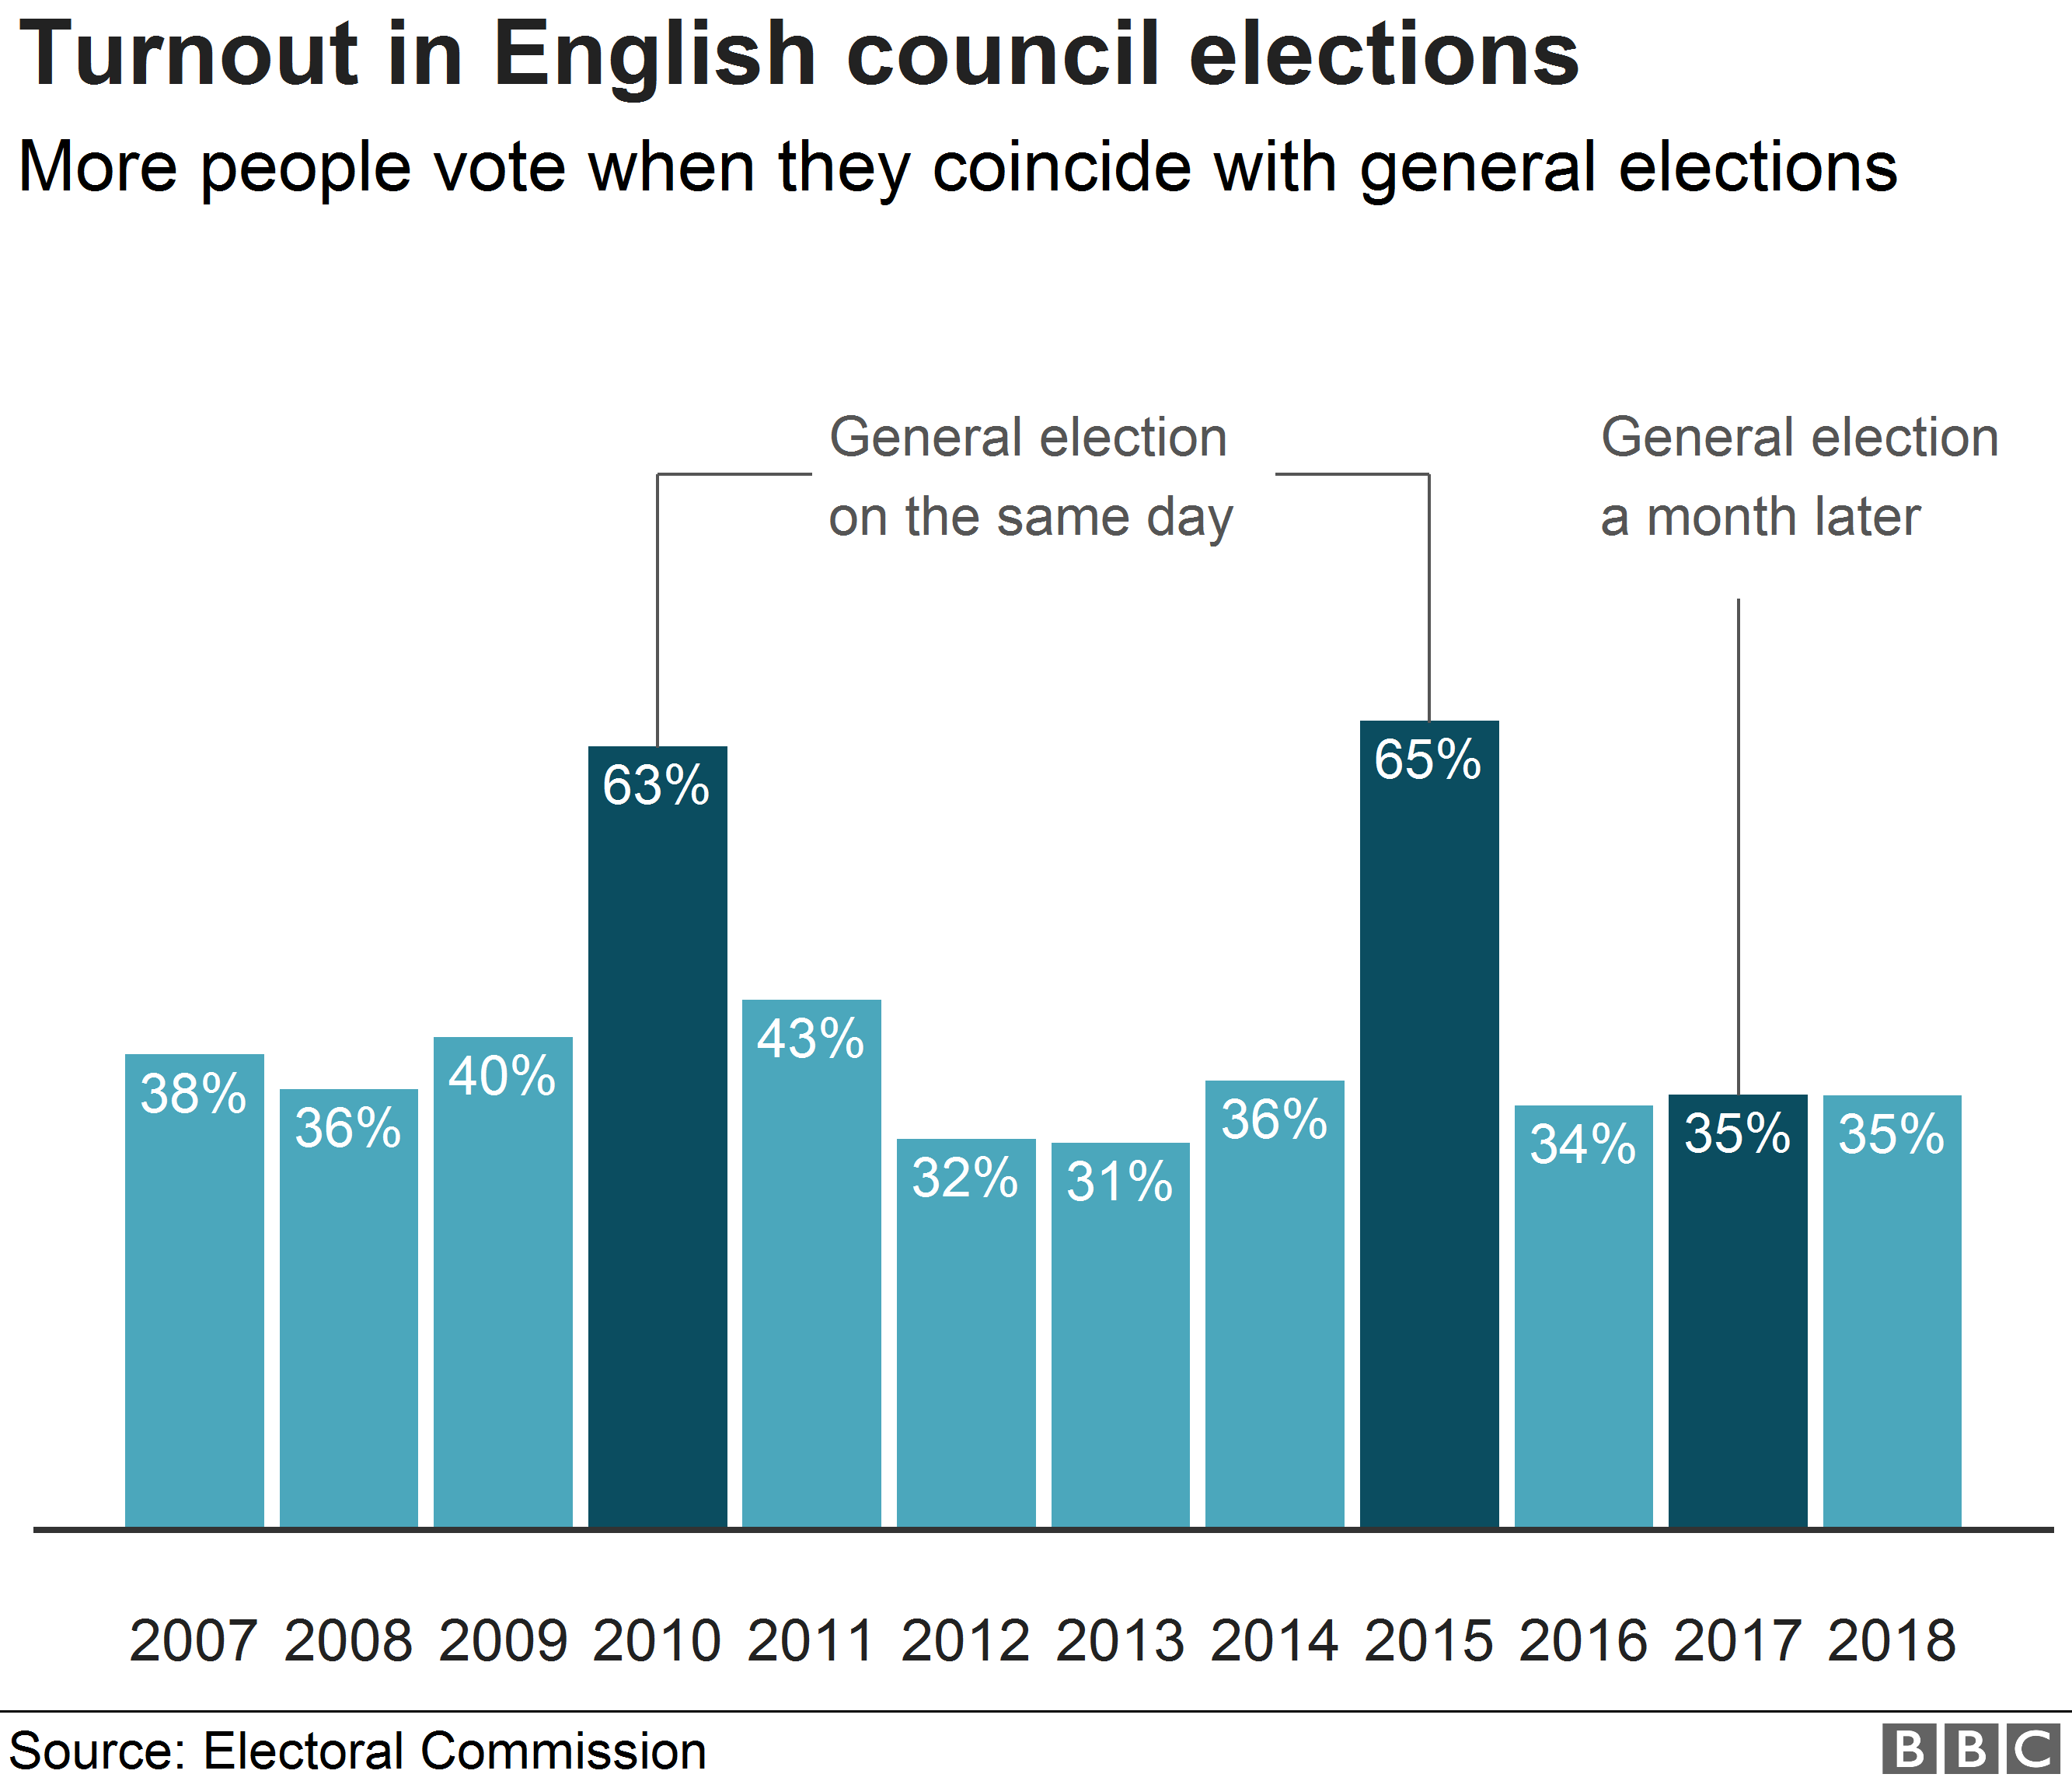 Chart showing turnout